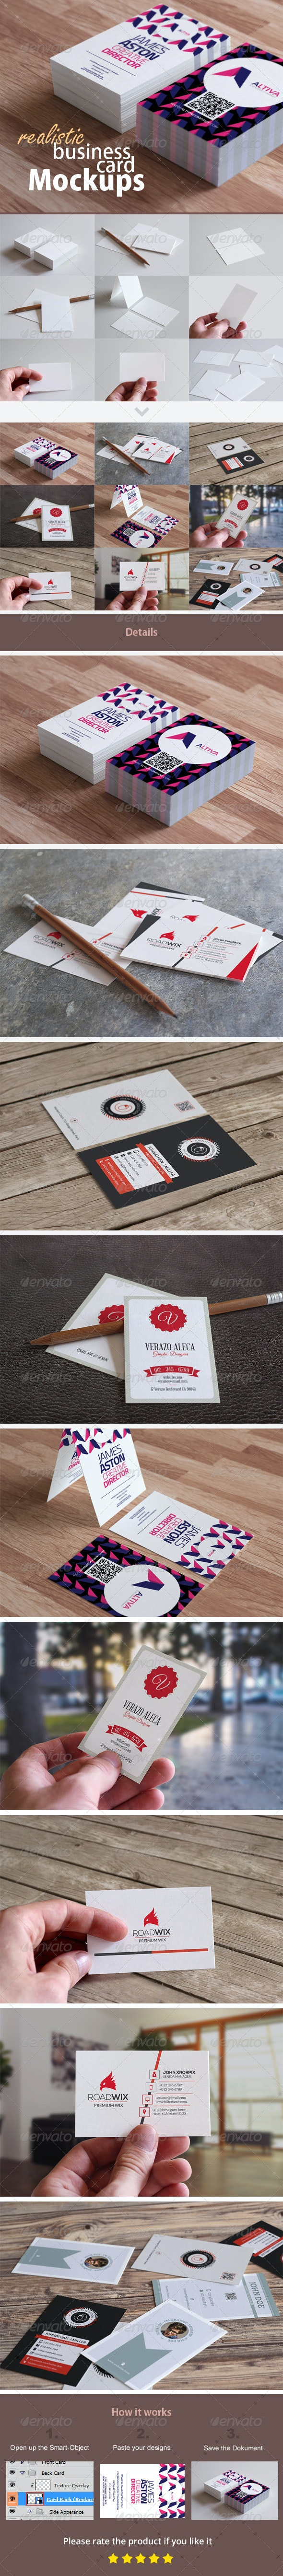 Realistic Business Card Mockups - Business Cards Print